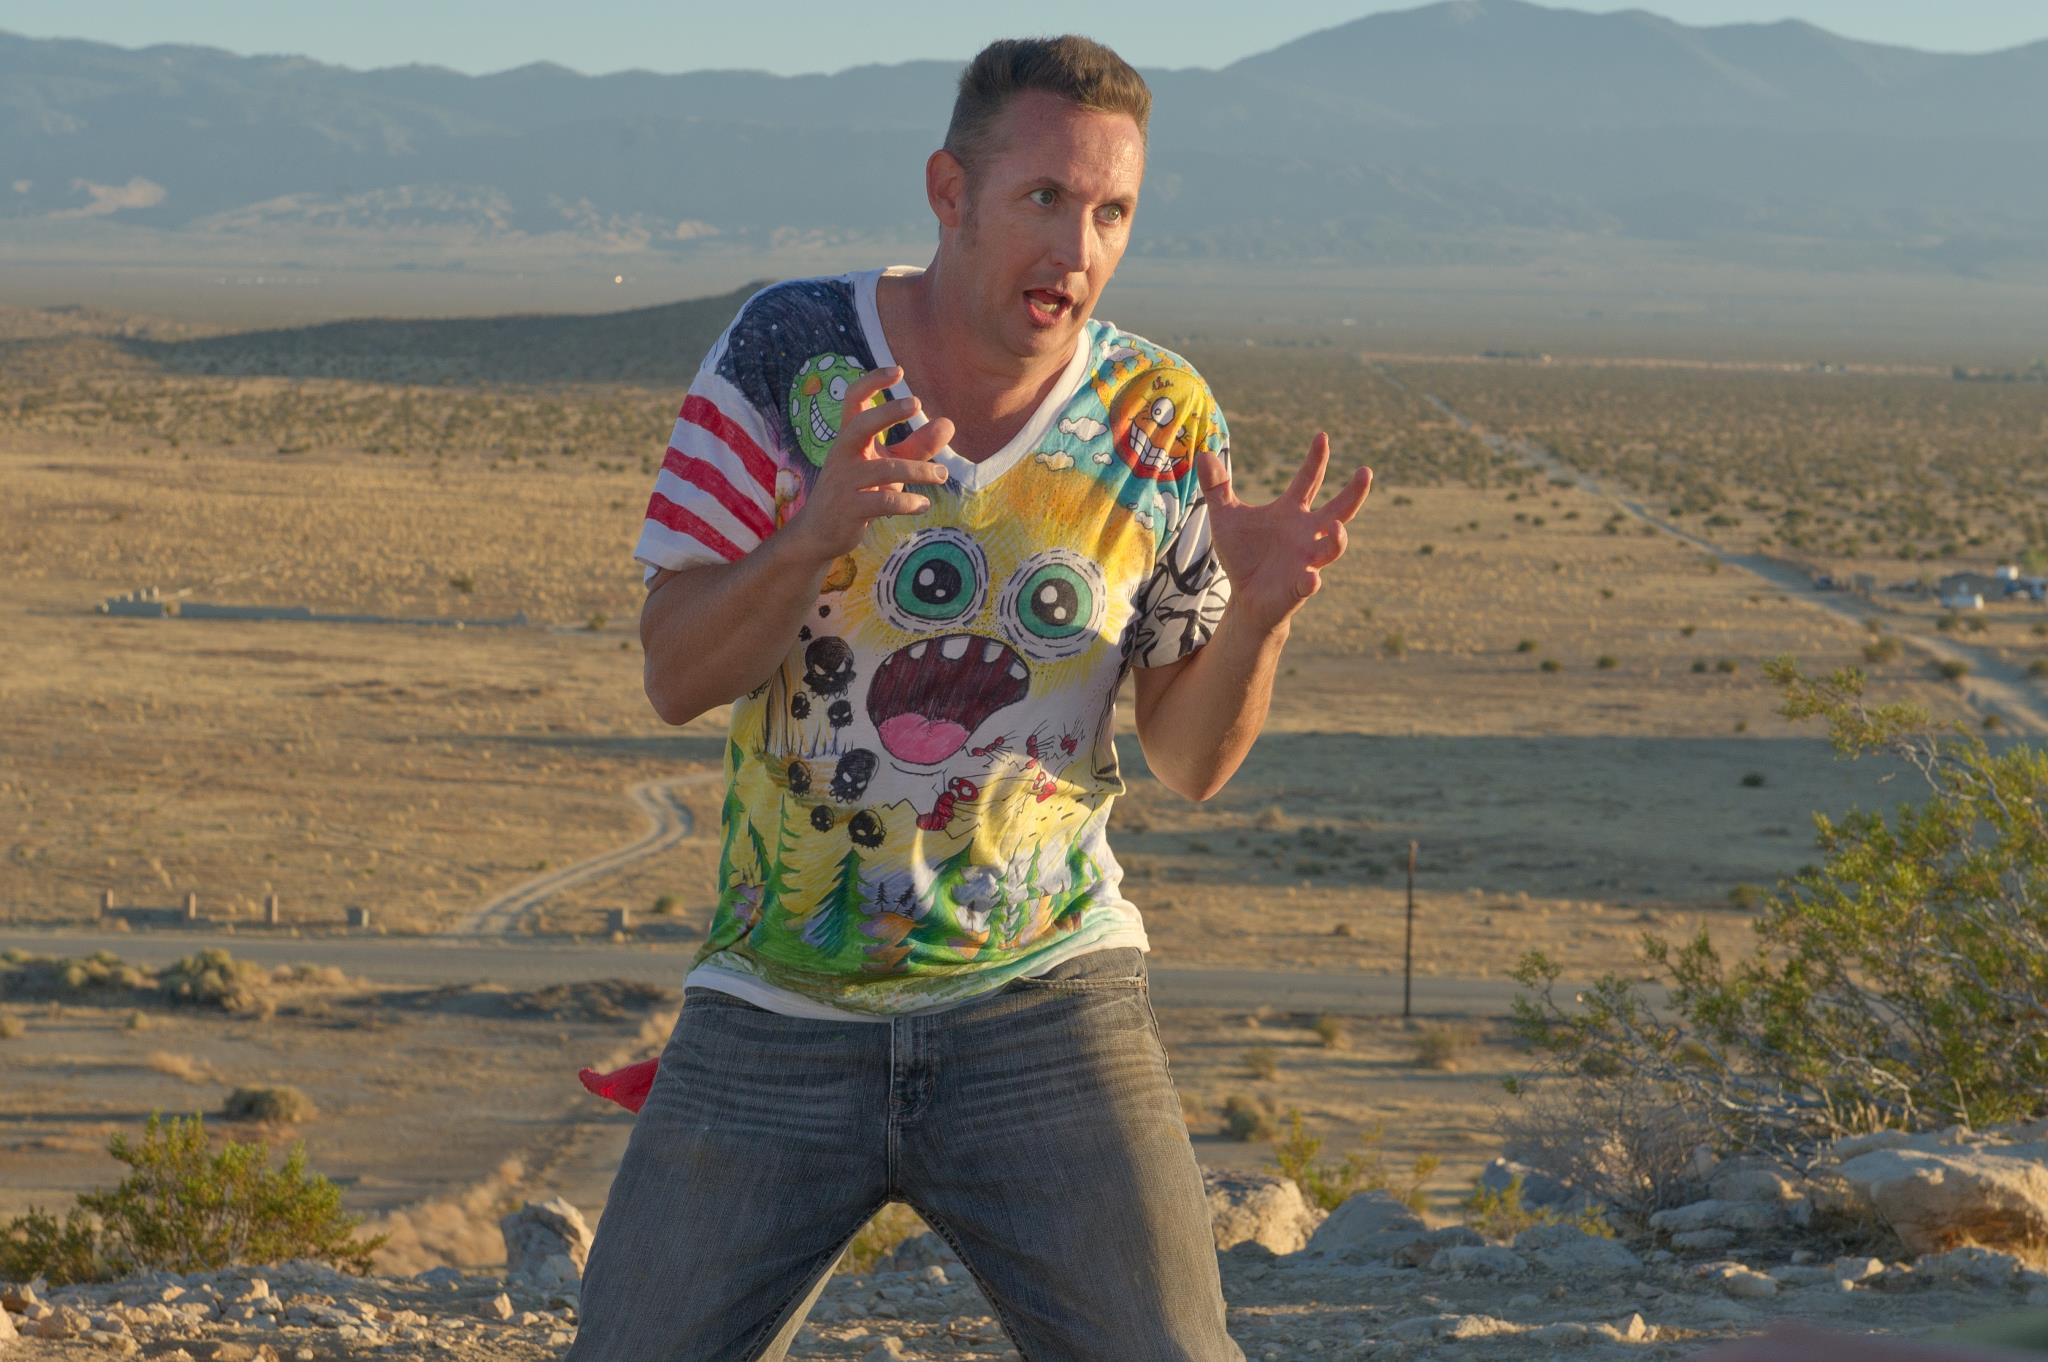 """Harland Williams filming his latest Stand Up special """"Force of Nature""""...in the desert....by himself."""